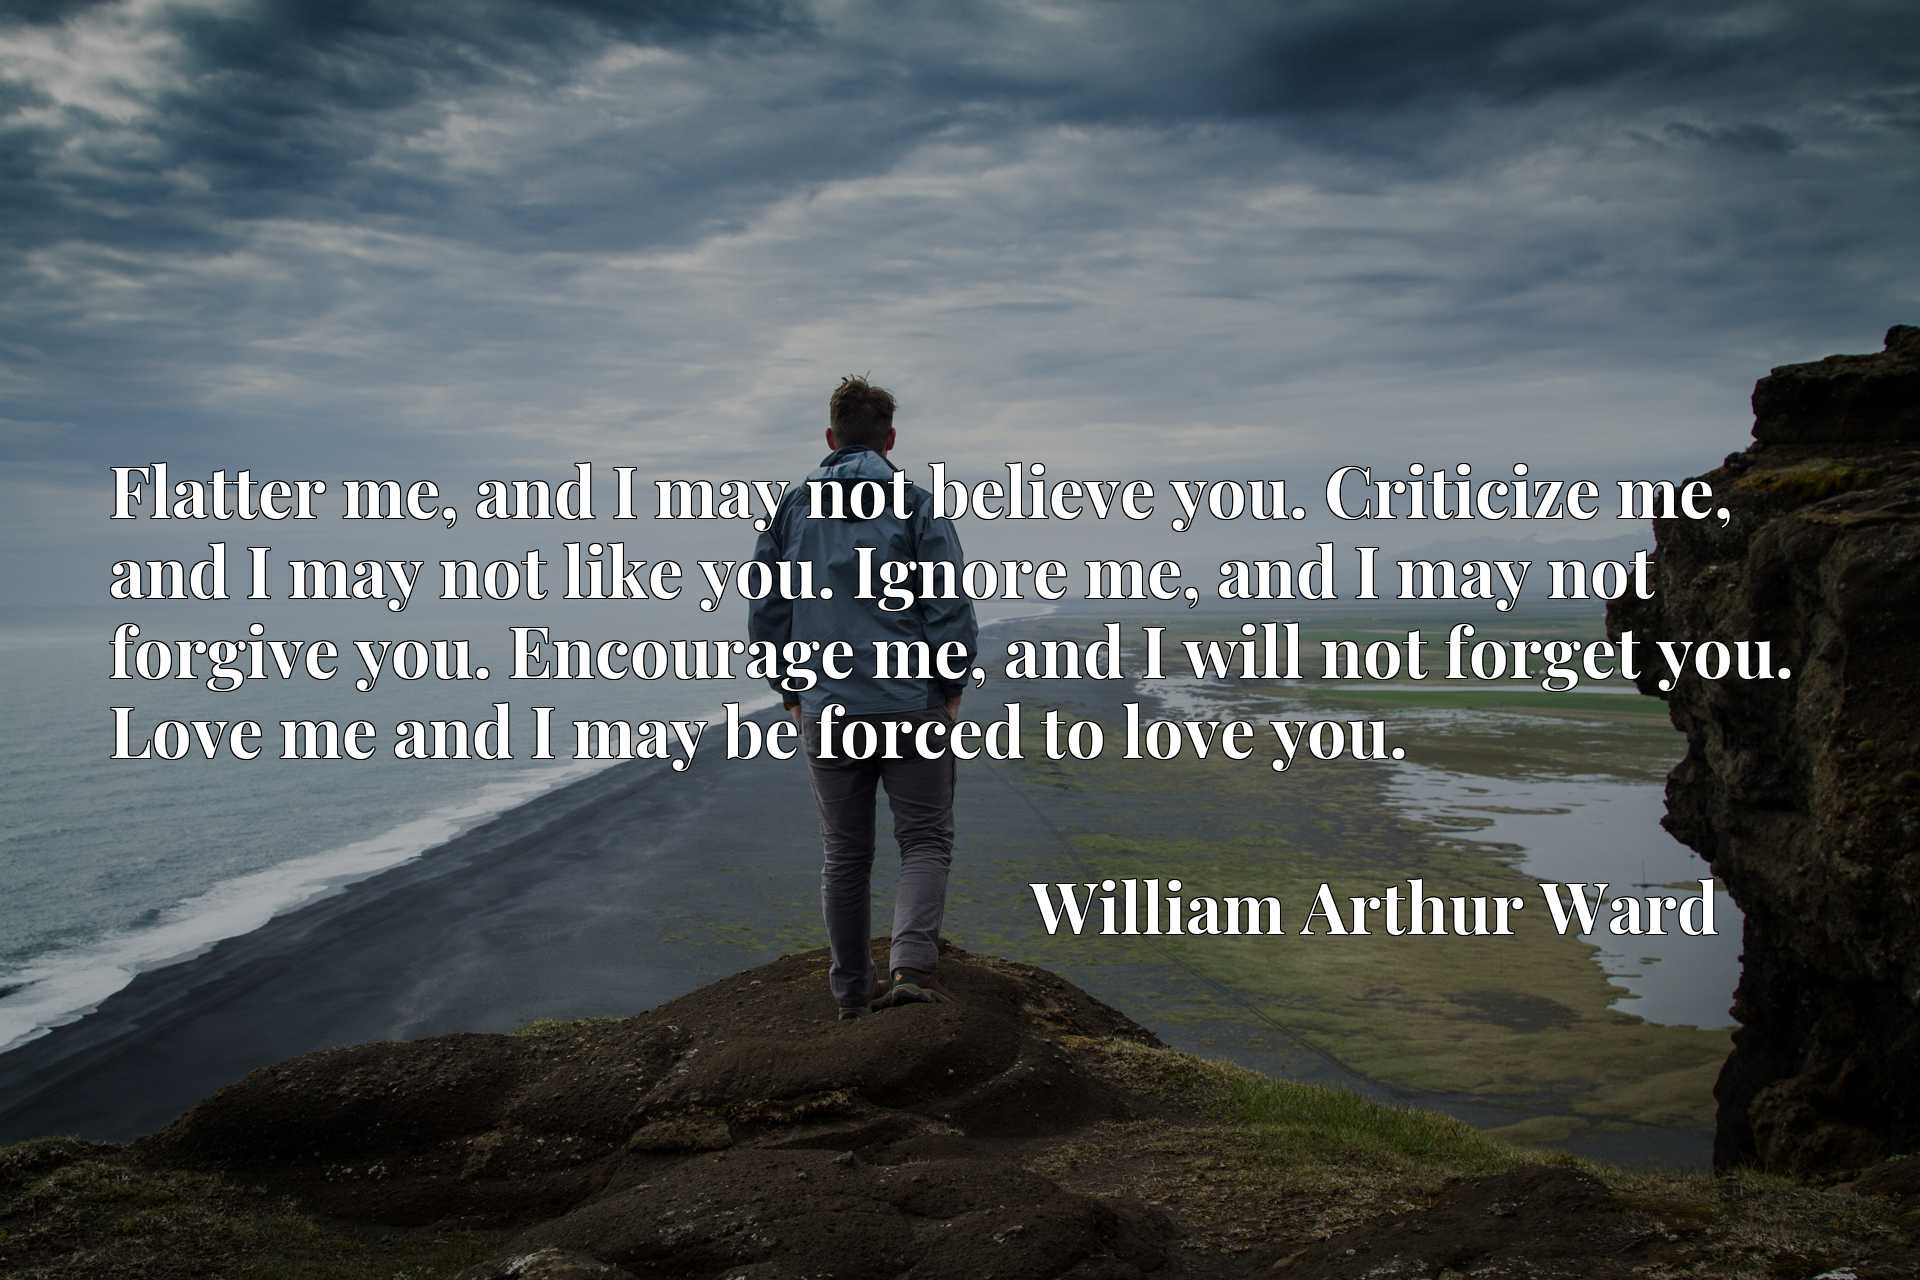 Flatter me, and I may not believe you. Criticize me, and I may not like you. Ignore me, and I may not forgive you. Encourage me, and I will not forget you. Love me and I may be forced to love you.